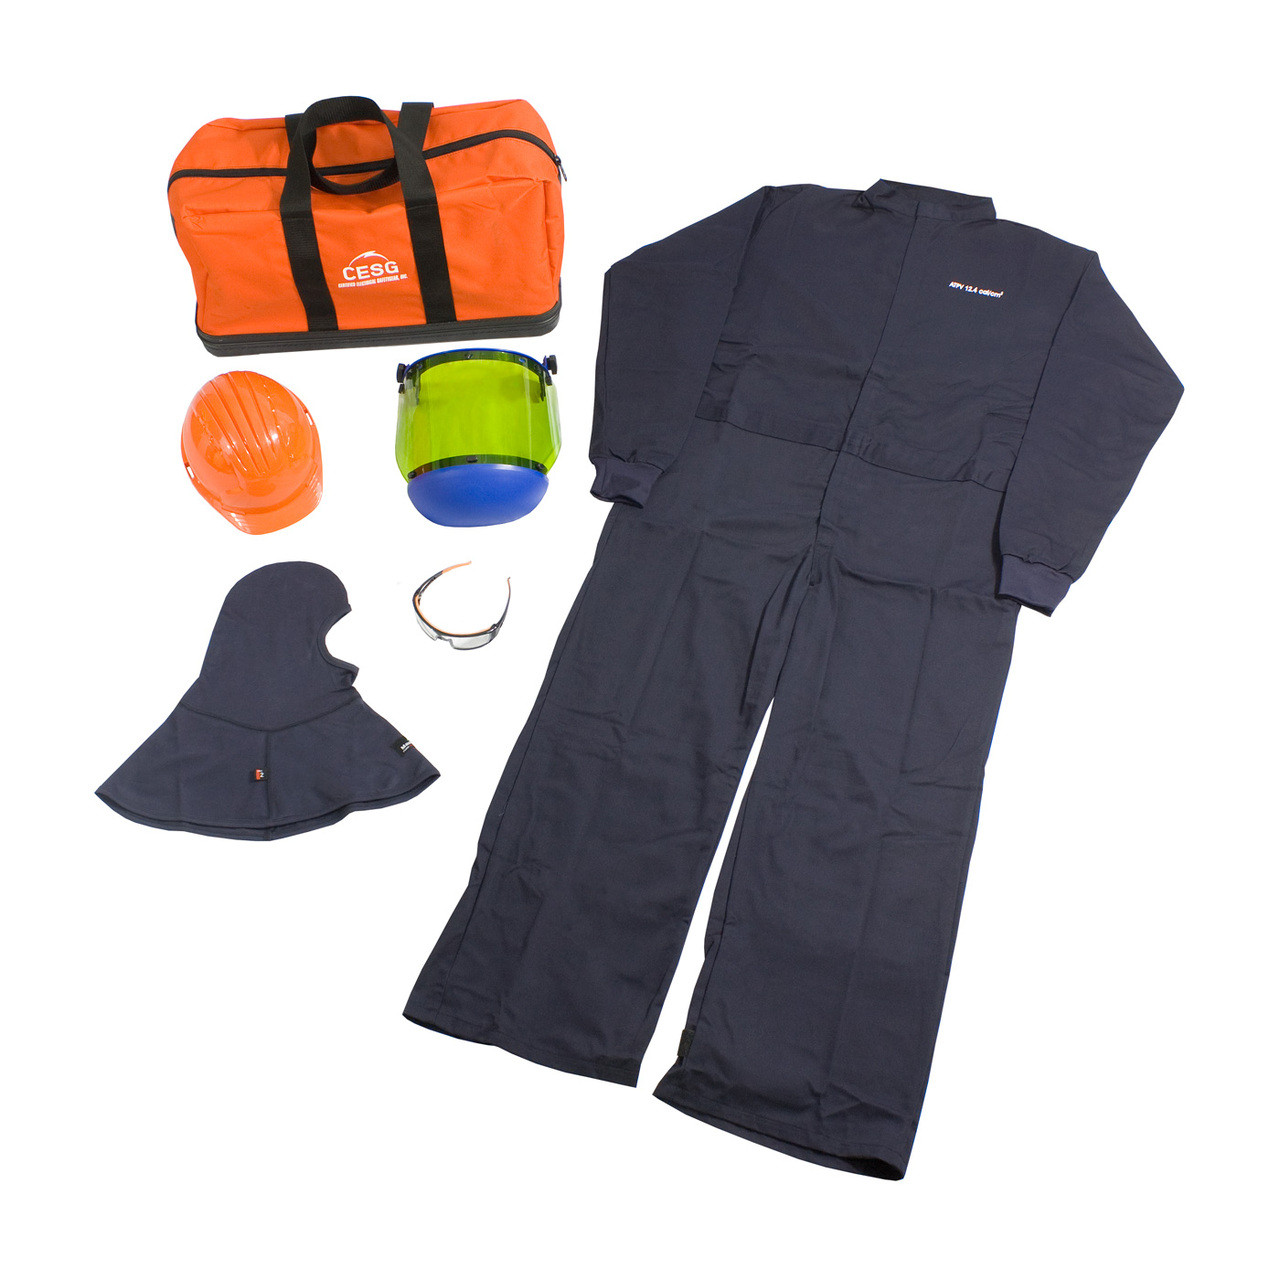 af89c72b183b PIP HRC 2 ARC Flash Coverall Kit - 8 Cal cm2  Small - 4XL  9150-51834 -  Jendco Safety Supply